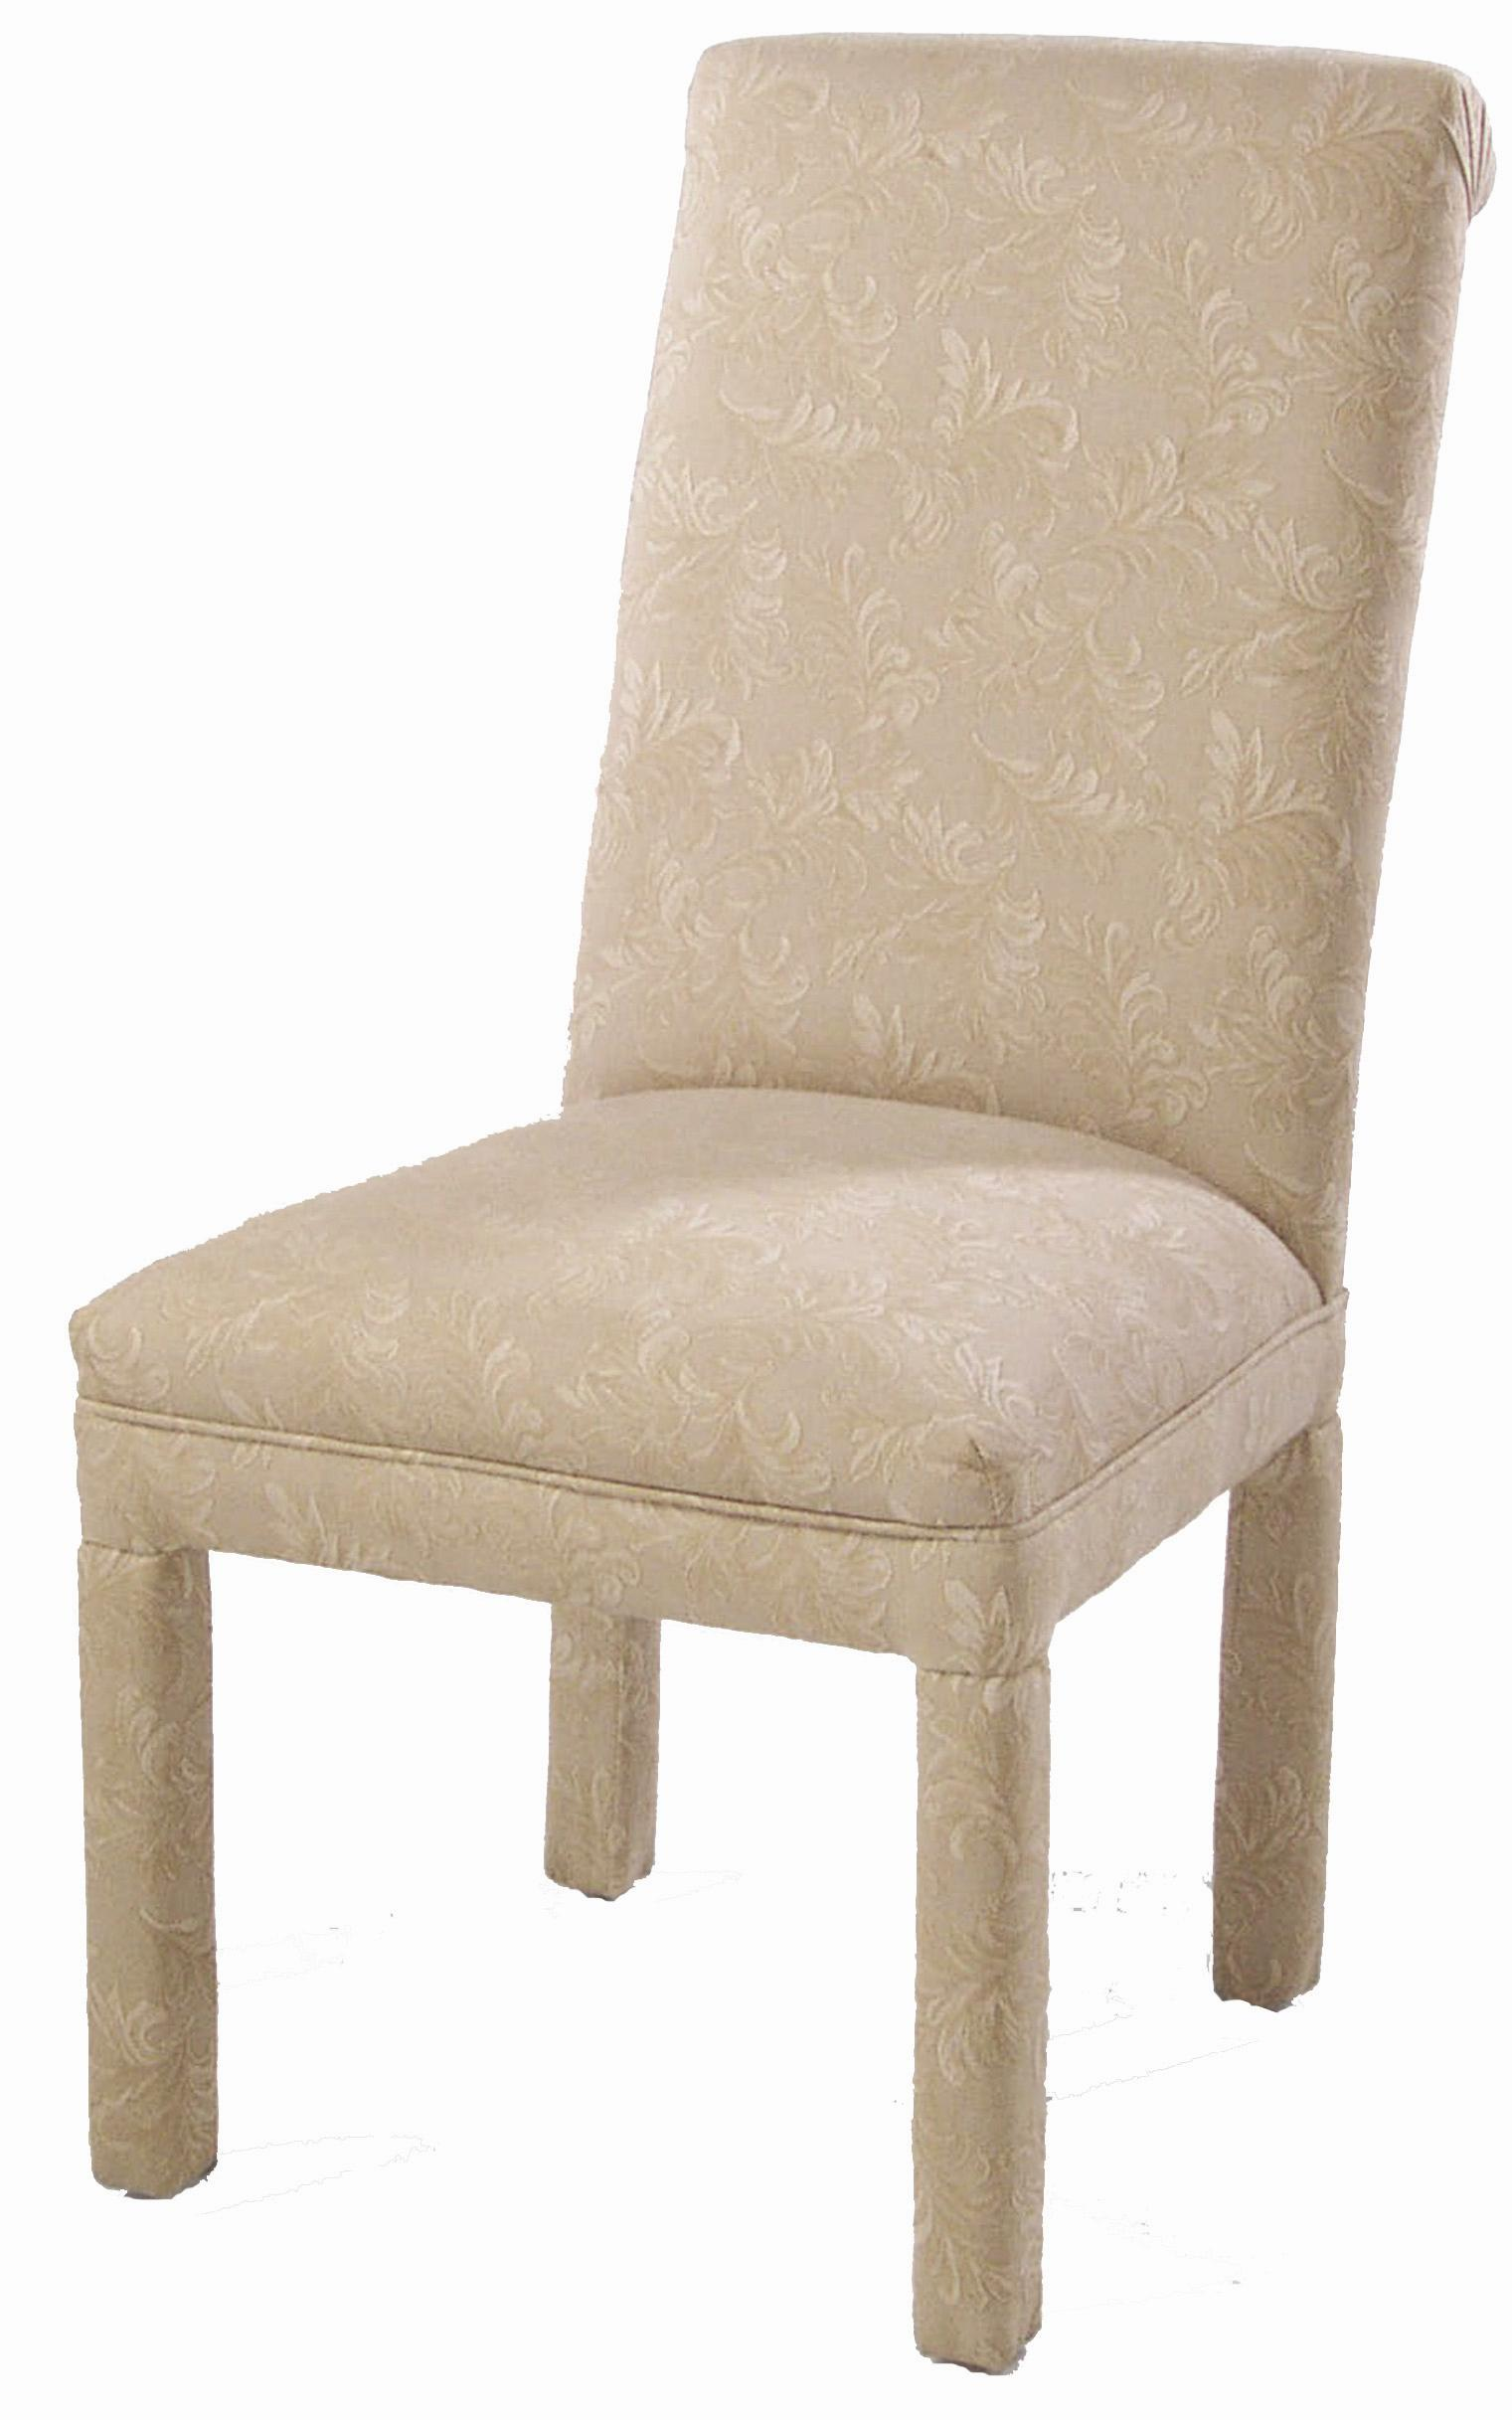 Genial Upholstered Dining Chair